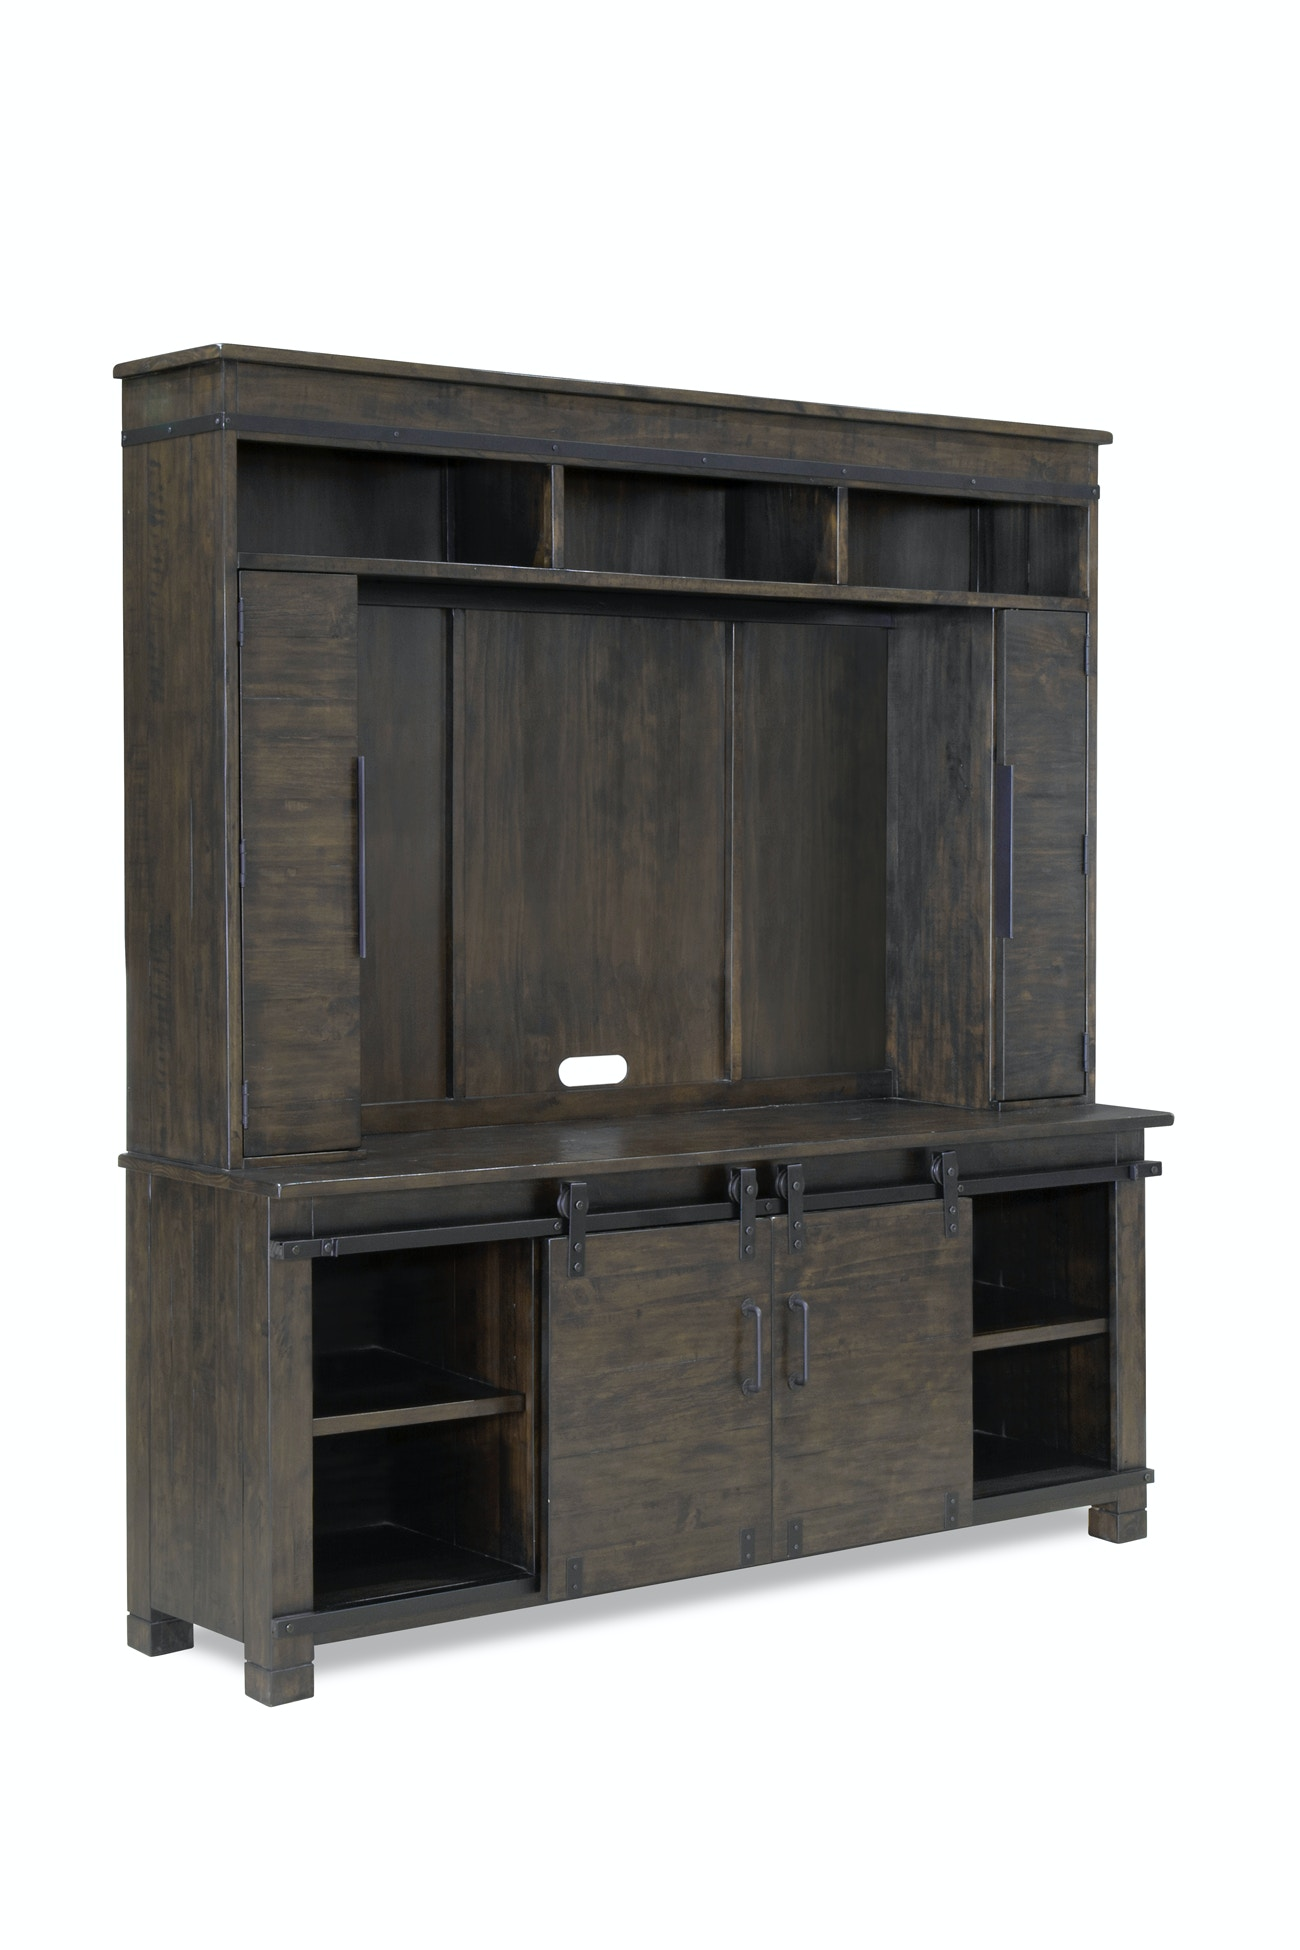 Magnussen Home Living Room Abington Console With Hutch 769428   Furniture  Fair   Cincinnati U0026 Dayton OH And Northern KY